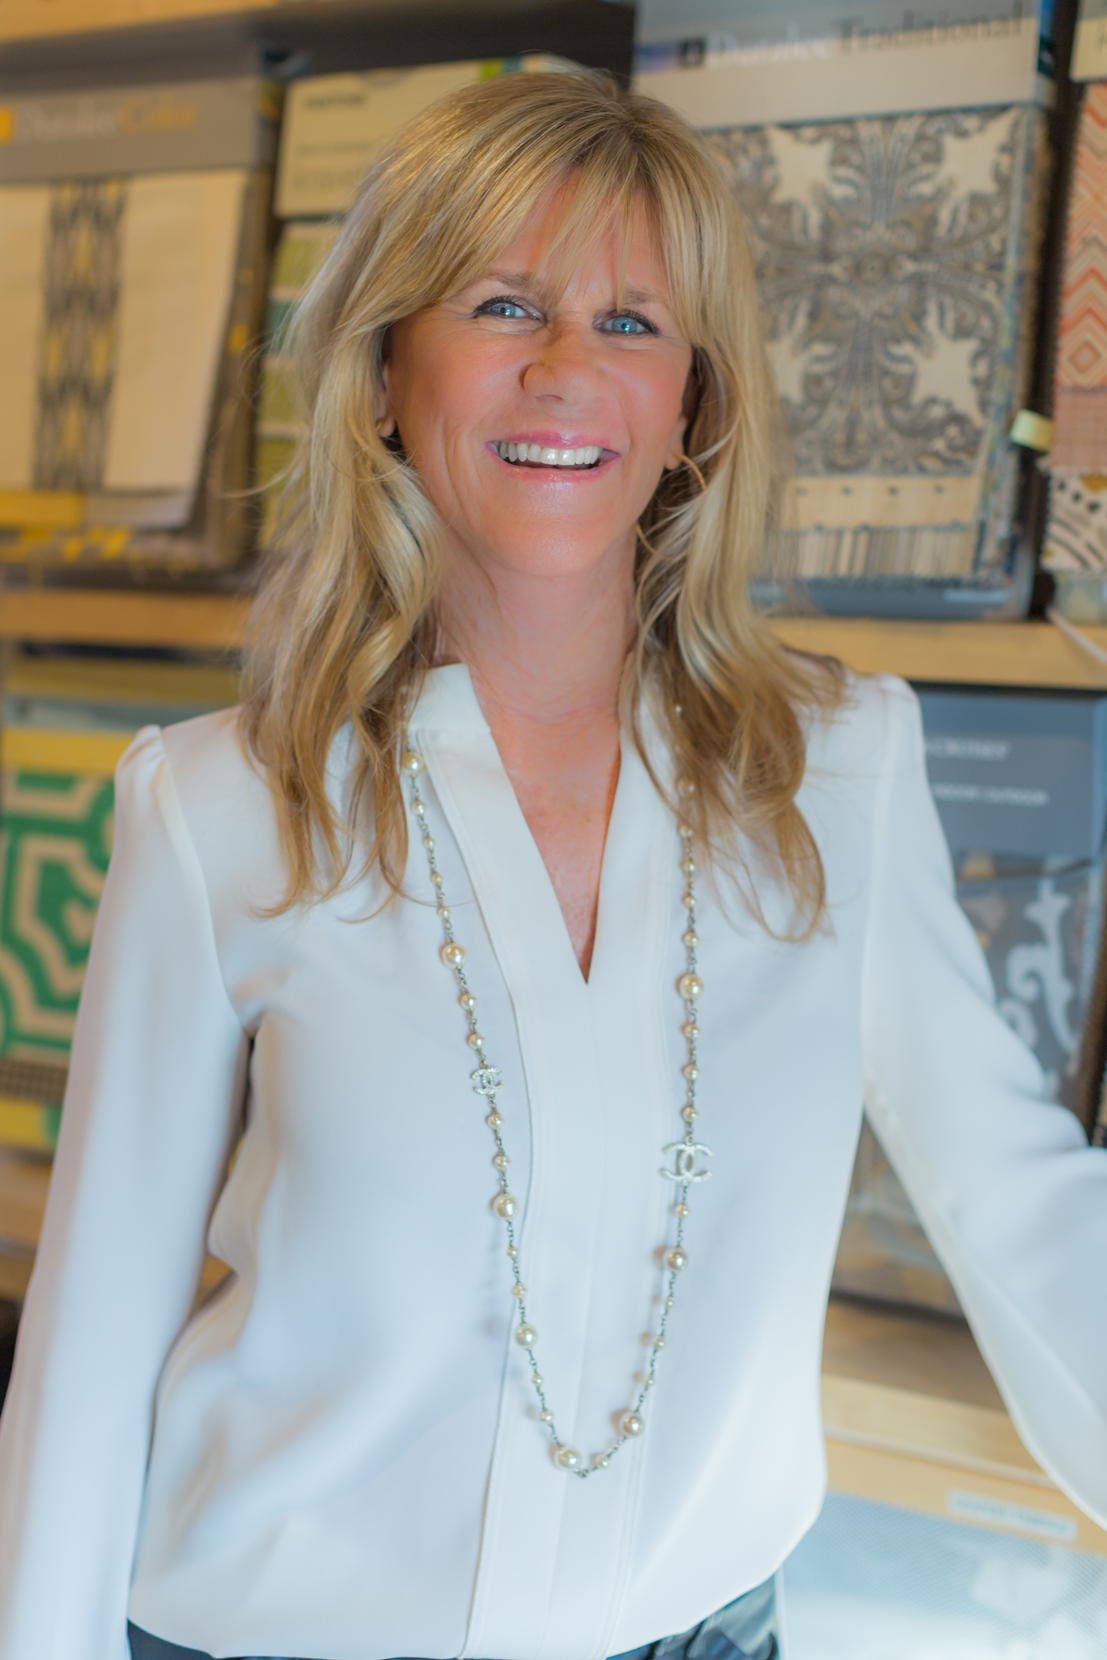 """Debra Borden - Owner and Principal Designer, Debra Borden, has over 35 years experience in the Interior Design Industry. Debra lives by the motto, """"home is where your story begins,""""she believes that everyone tells their story through the way they live their life. Many of the Borden Interiors clients are repeat customers, and referrals from happy customers.Debra began her career at Barker Brothers in Los Angeles, where she was involved in store planning and was the Head Designer for the Home Design Studio. She is a graduate of the University of Arizona at Tucson with a Bachelor of Science Degree in Interior Design. Debra is also a member of IIDA and is a CCIDC Certified Interior Designer."""